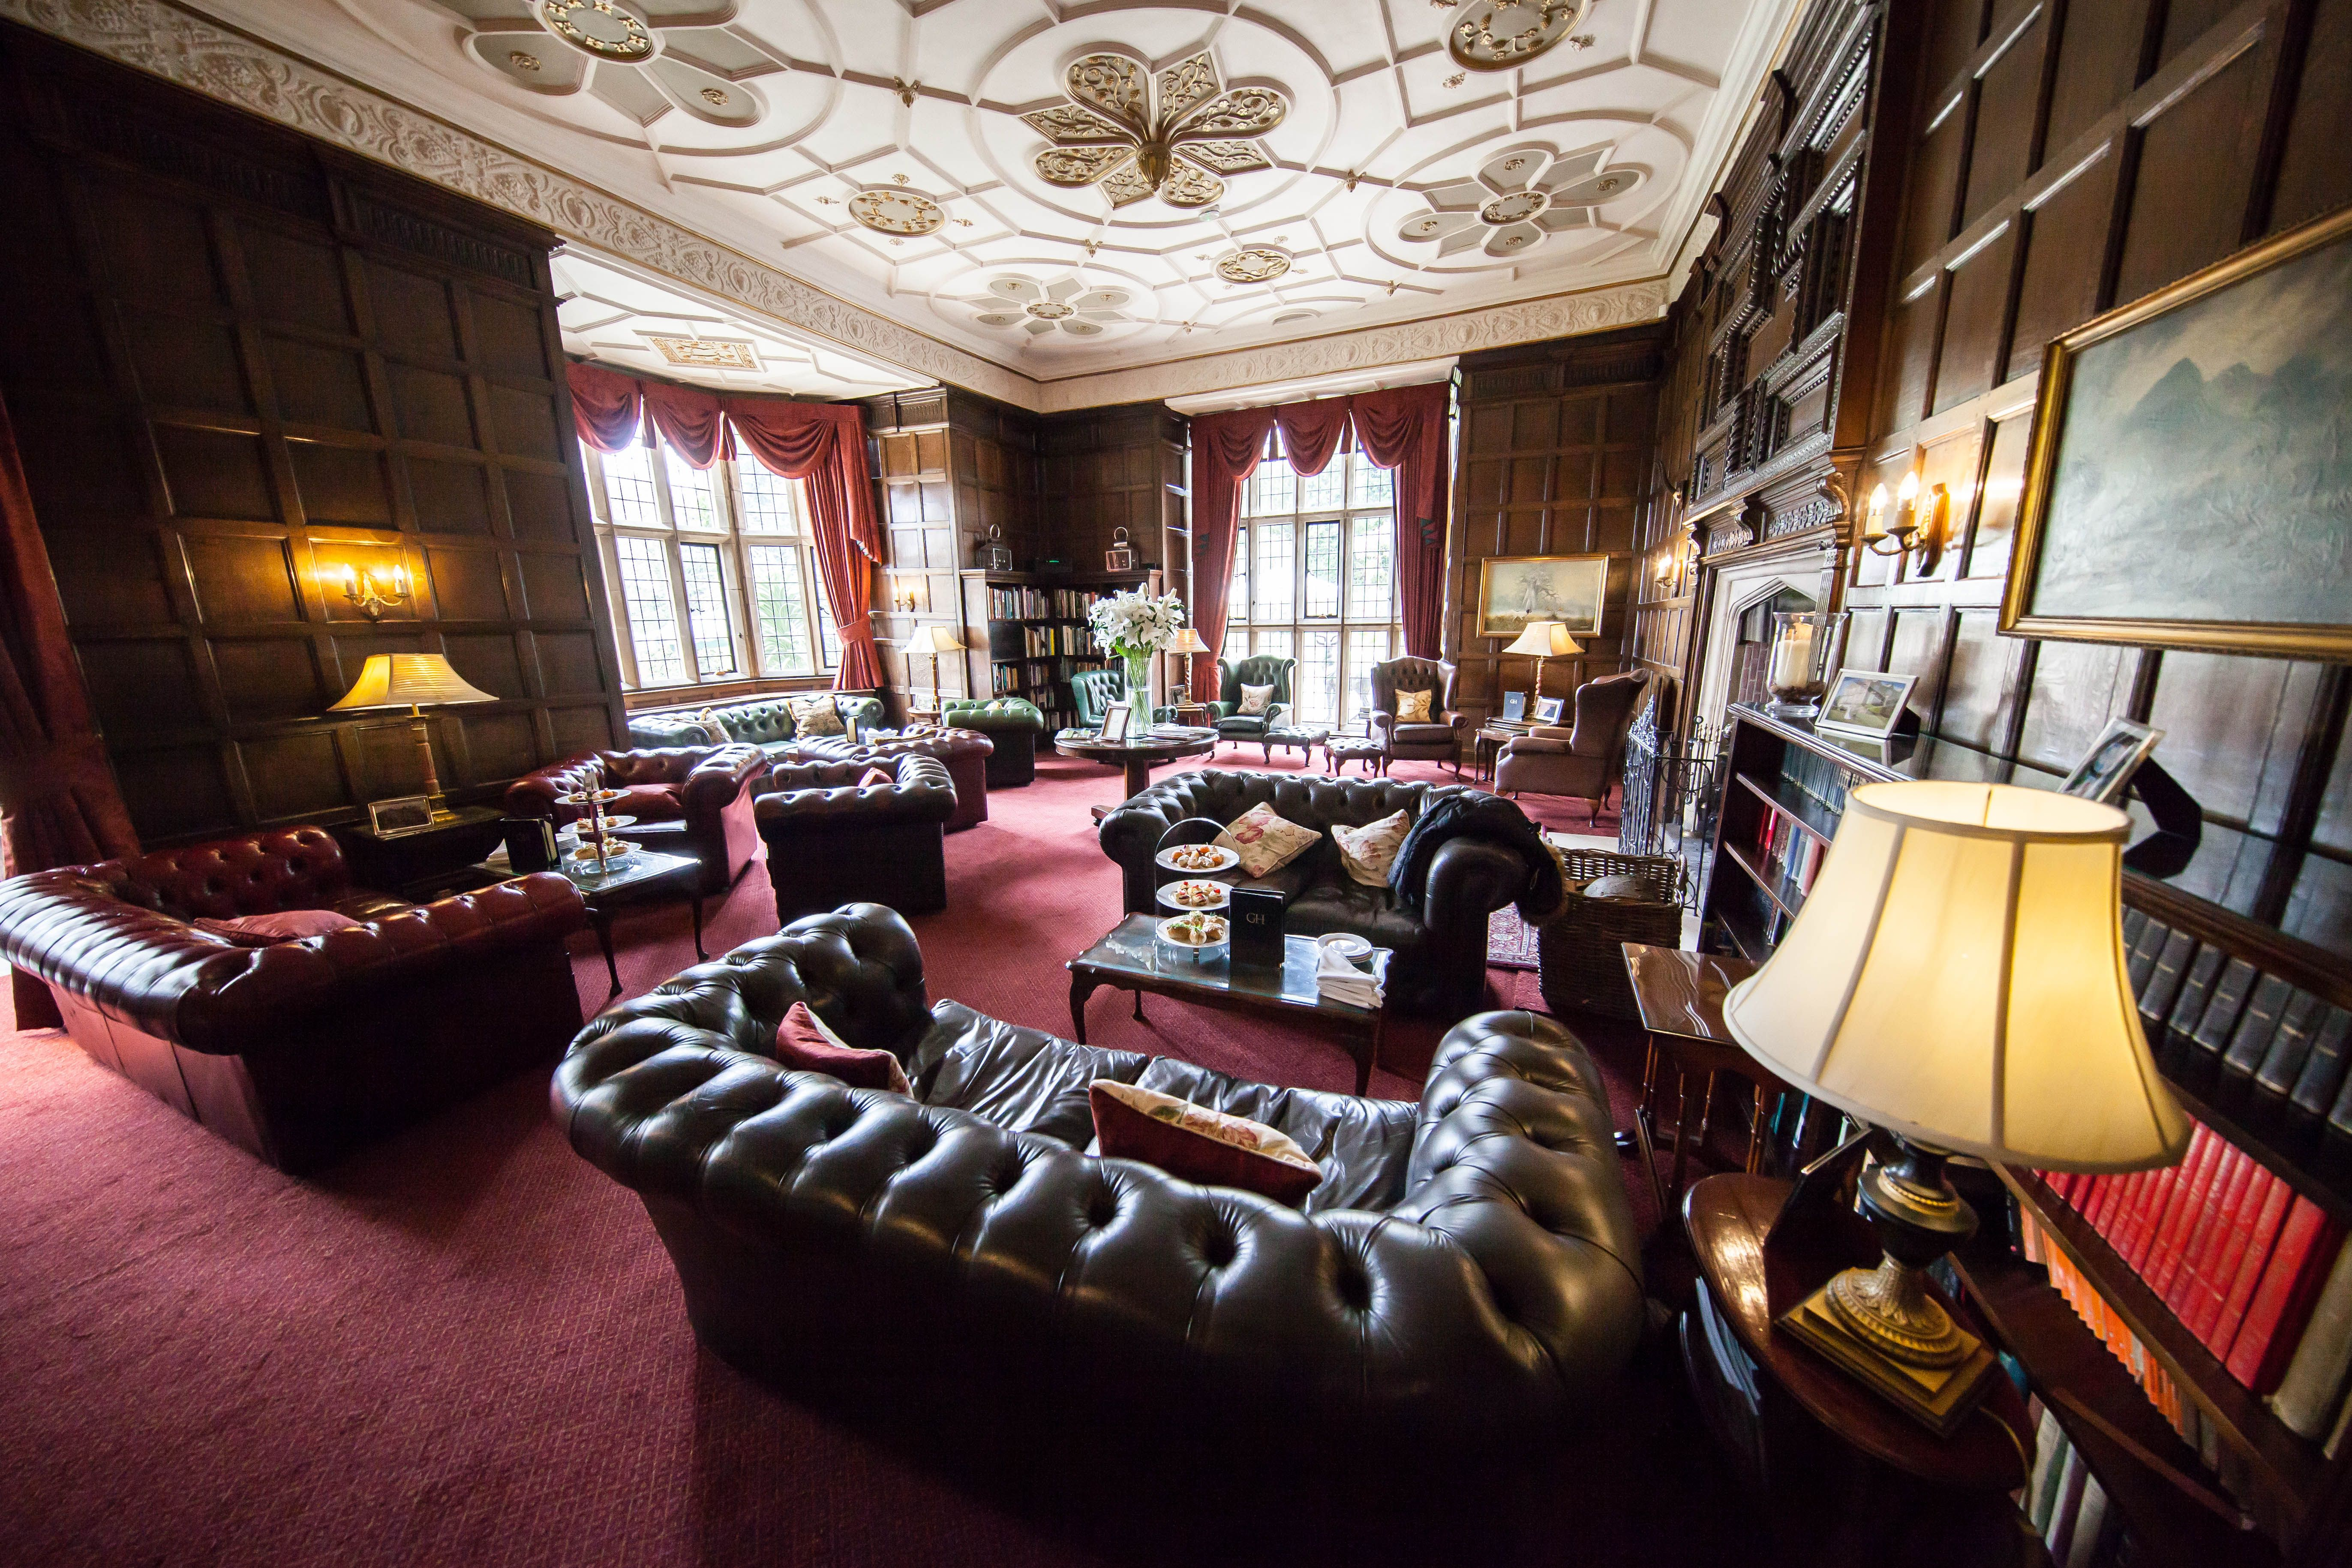 The Impressive 17th Century Library At Goldsborough Hall With Its Oak Panelling And Decorated Jacobean Ceiling Image By P Decor Oak Panels Interior Decorating